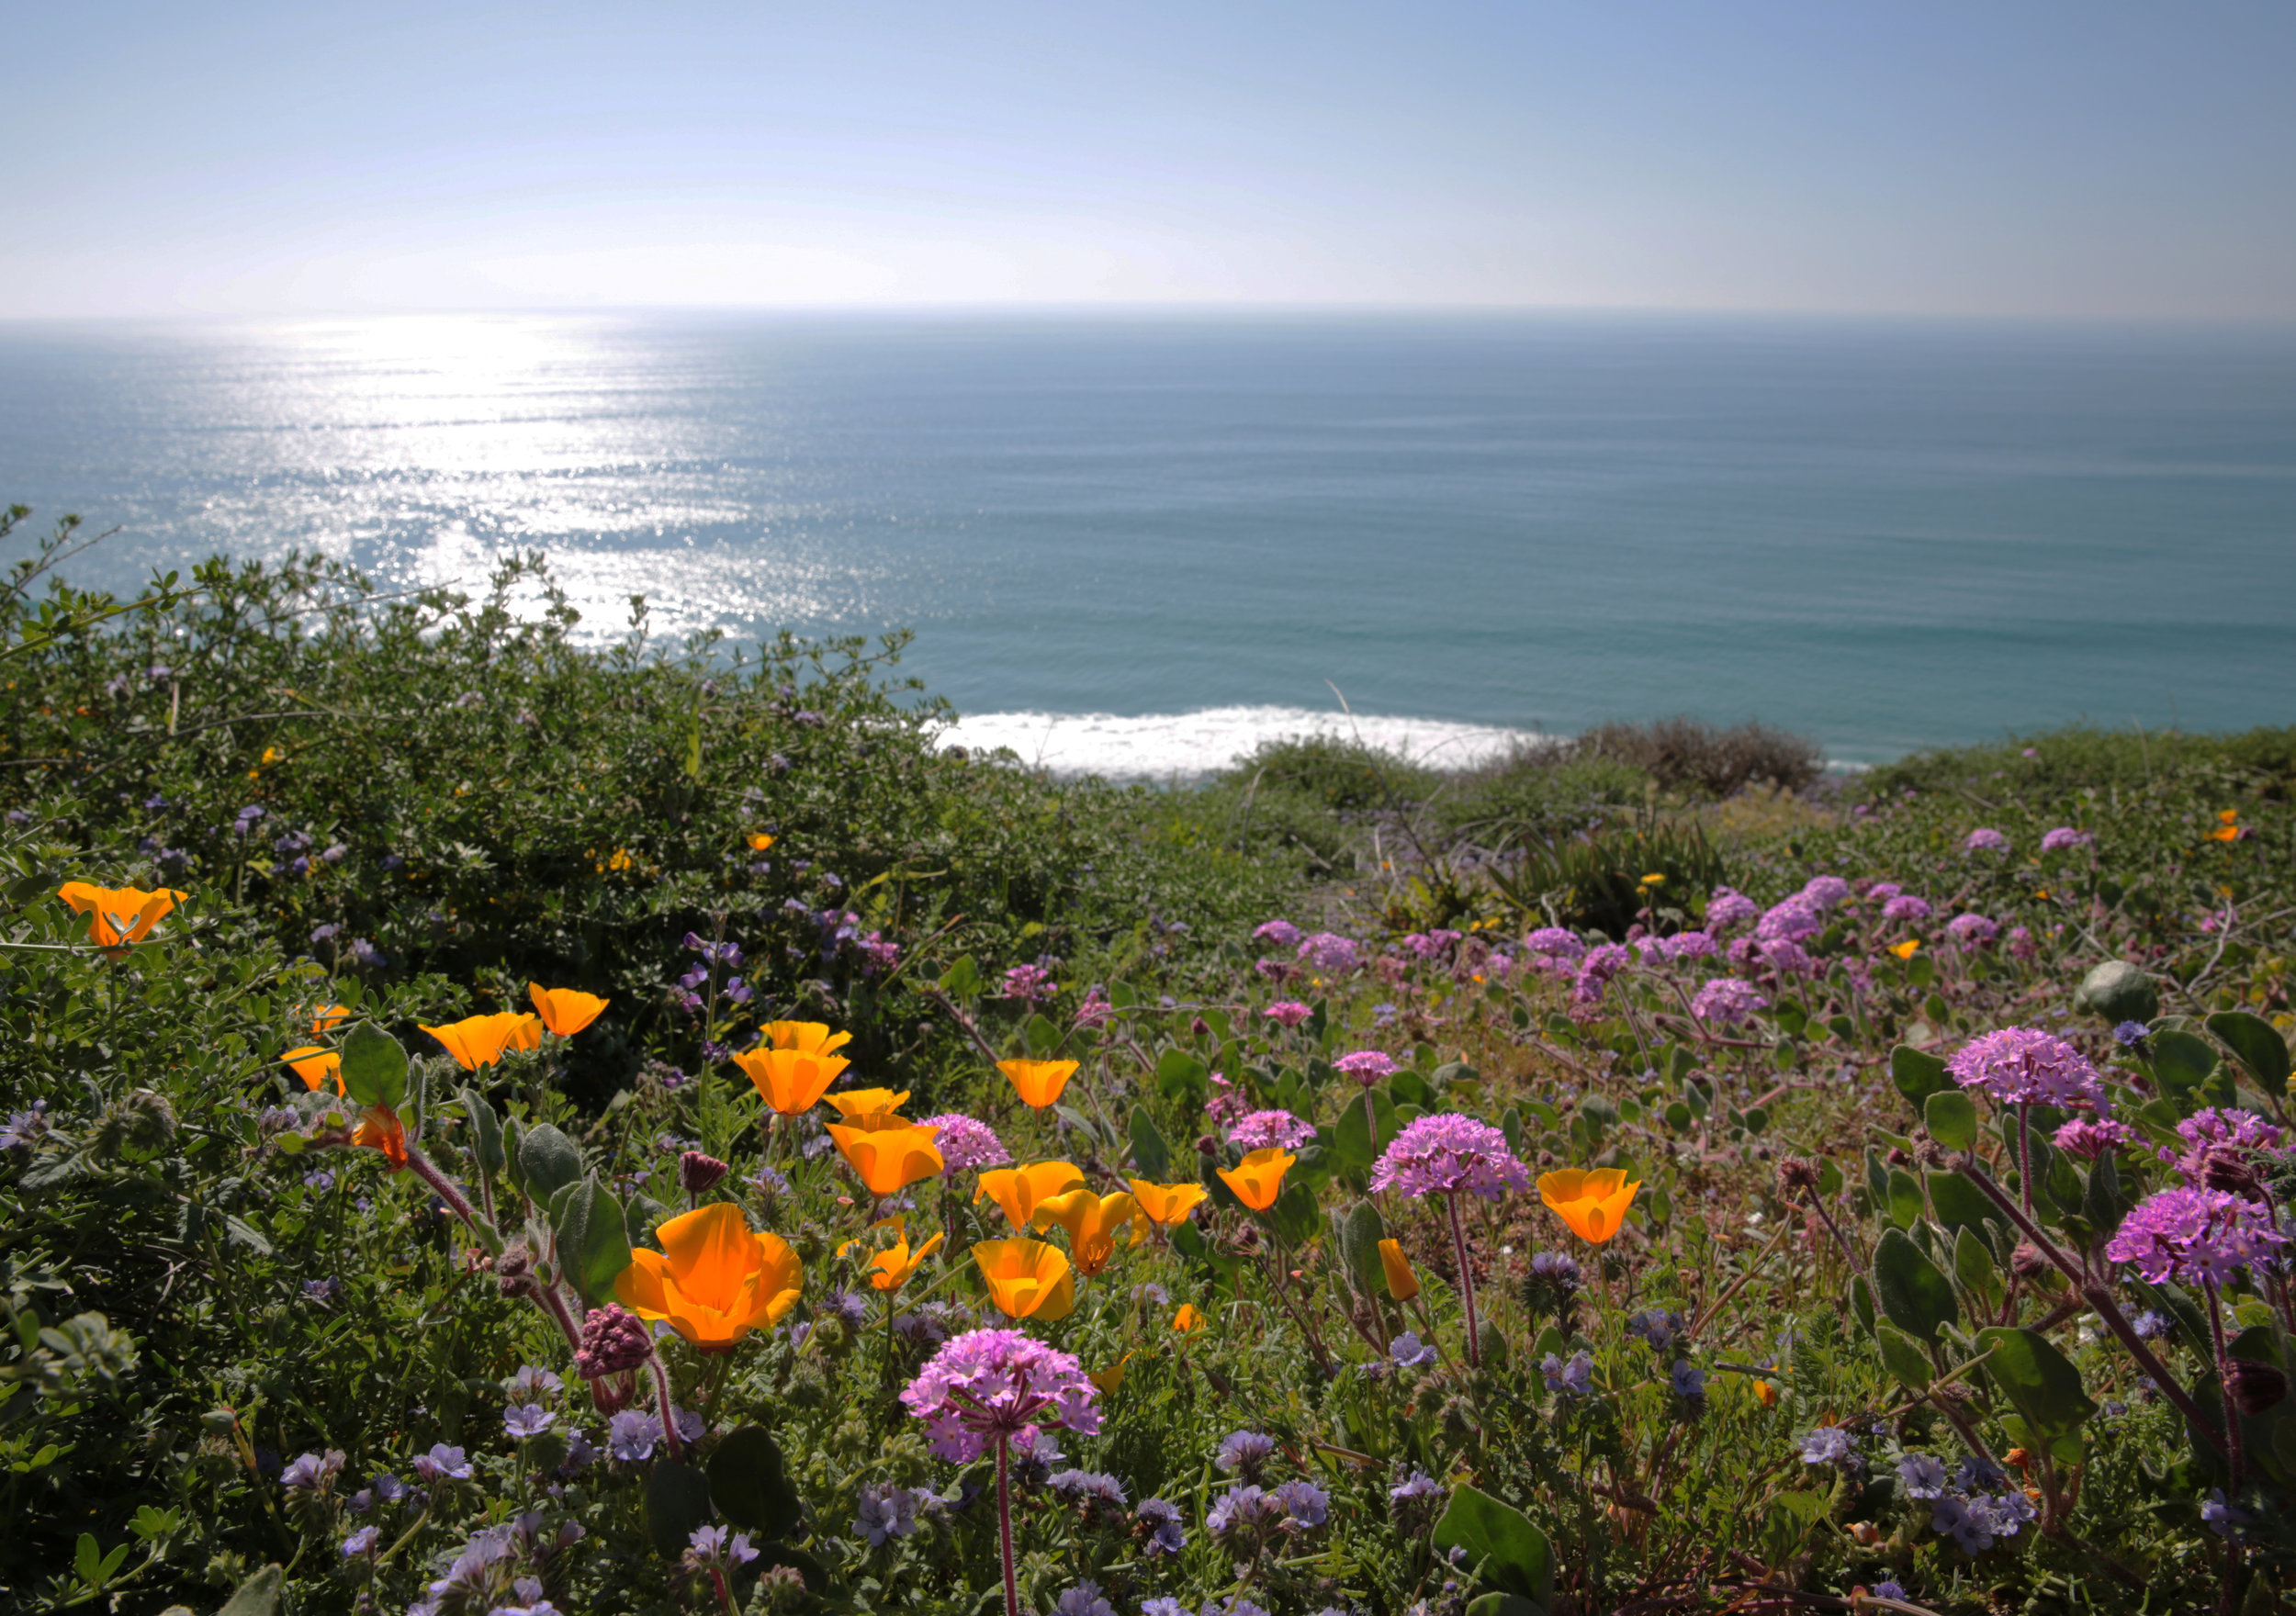 California poppies (Eschscholzia californica), beach sand verbena (Abronia umbellata) and common phacelia (Phacelia distans) overlook the Pacific Ocean at Torrey Pines State Natural Reserve in La Jolla.